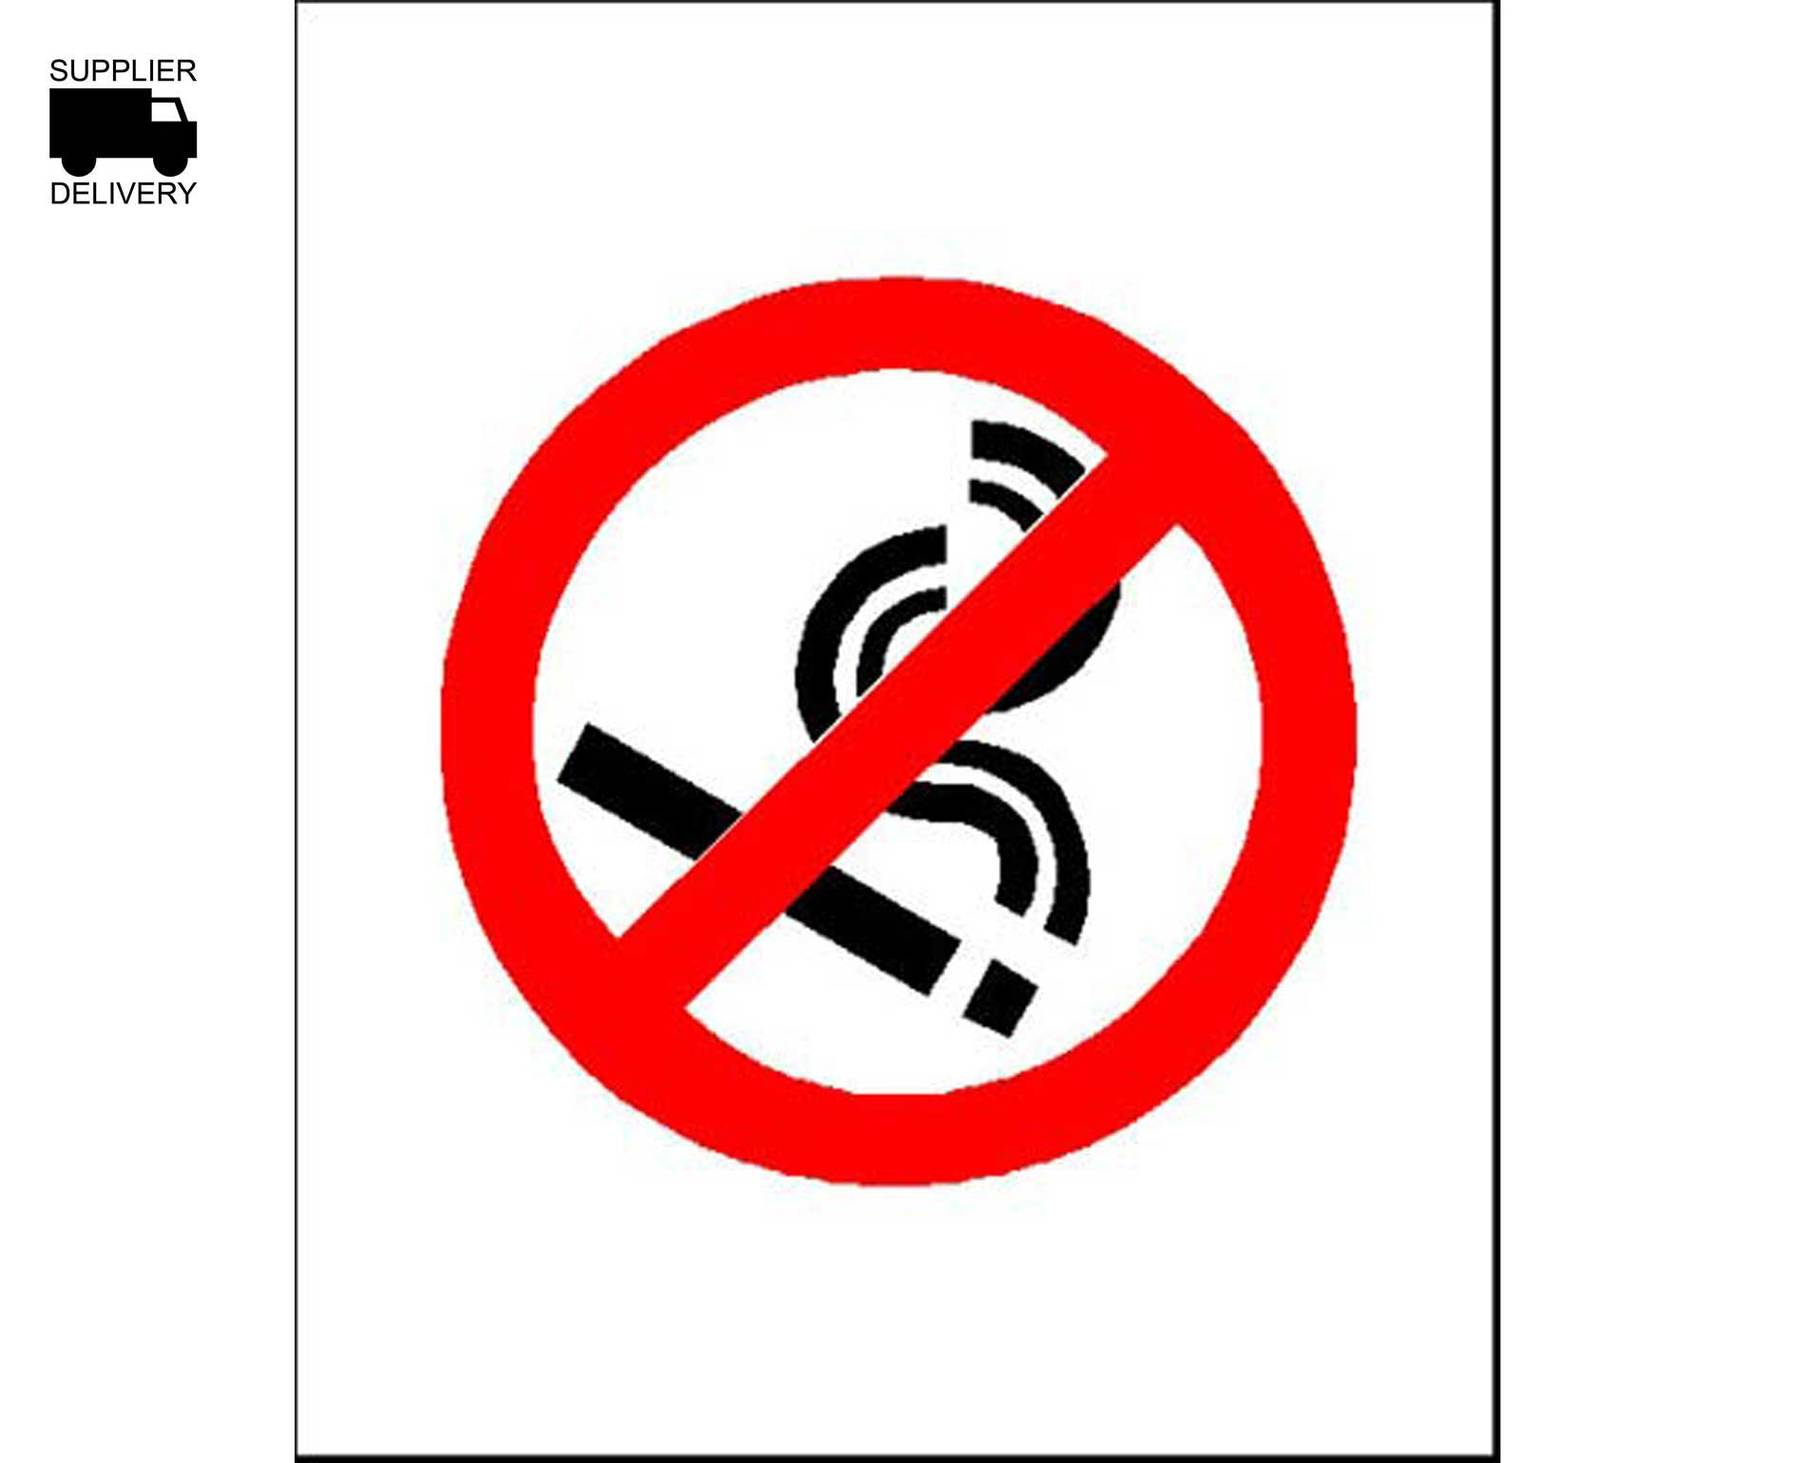 No Smoking Logos Clipart - Free to use Clip Art Resource